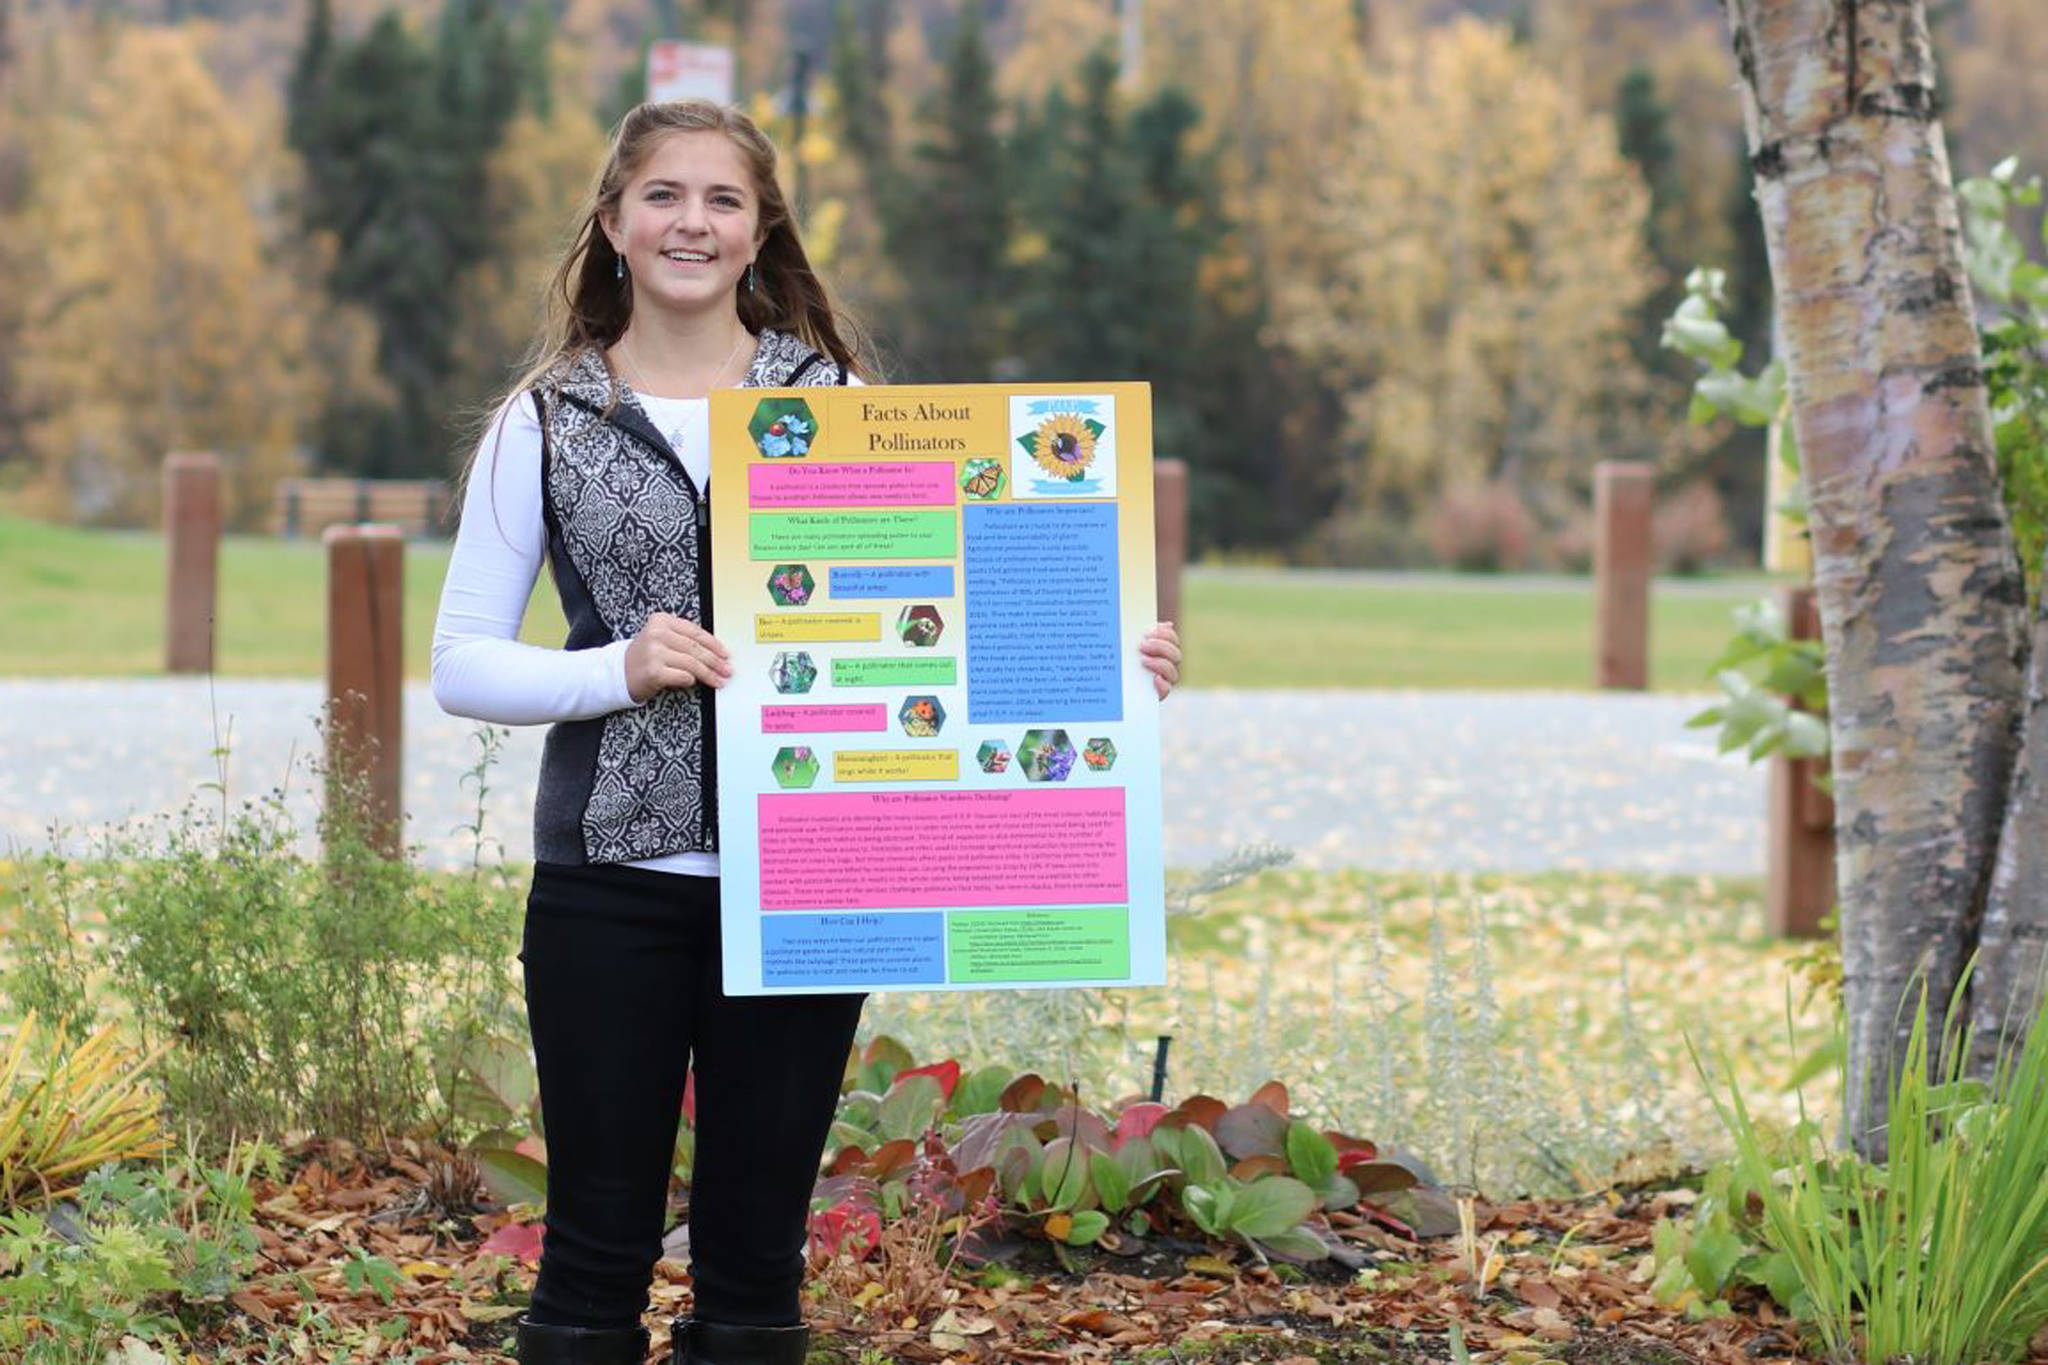 Anna DeVolld poses with an informational poster for her Promote Our Pollinators project in this undated photo. (Photo courtesy Shona DeVolld)